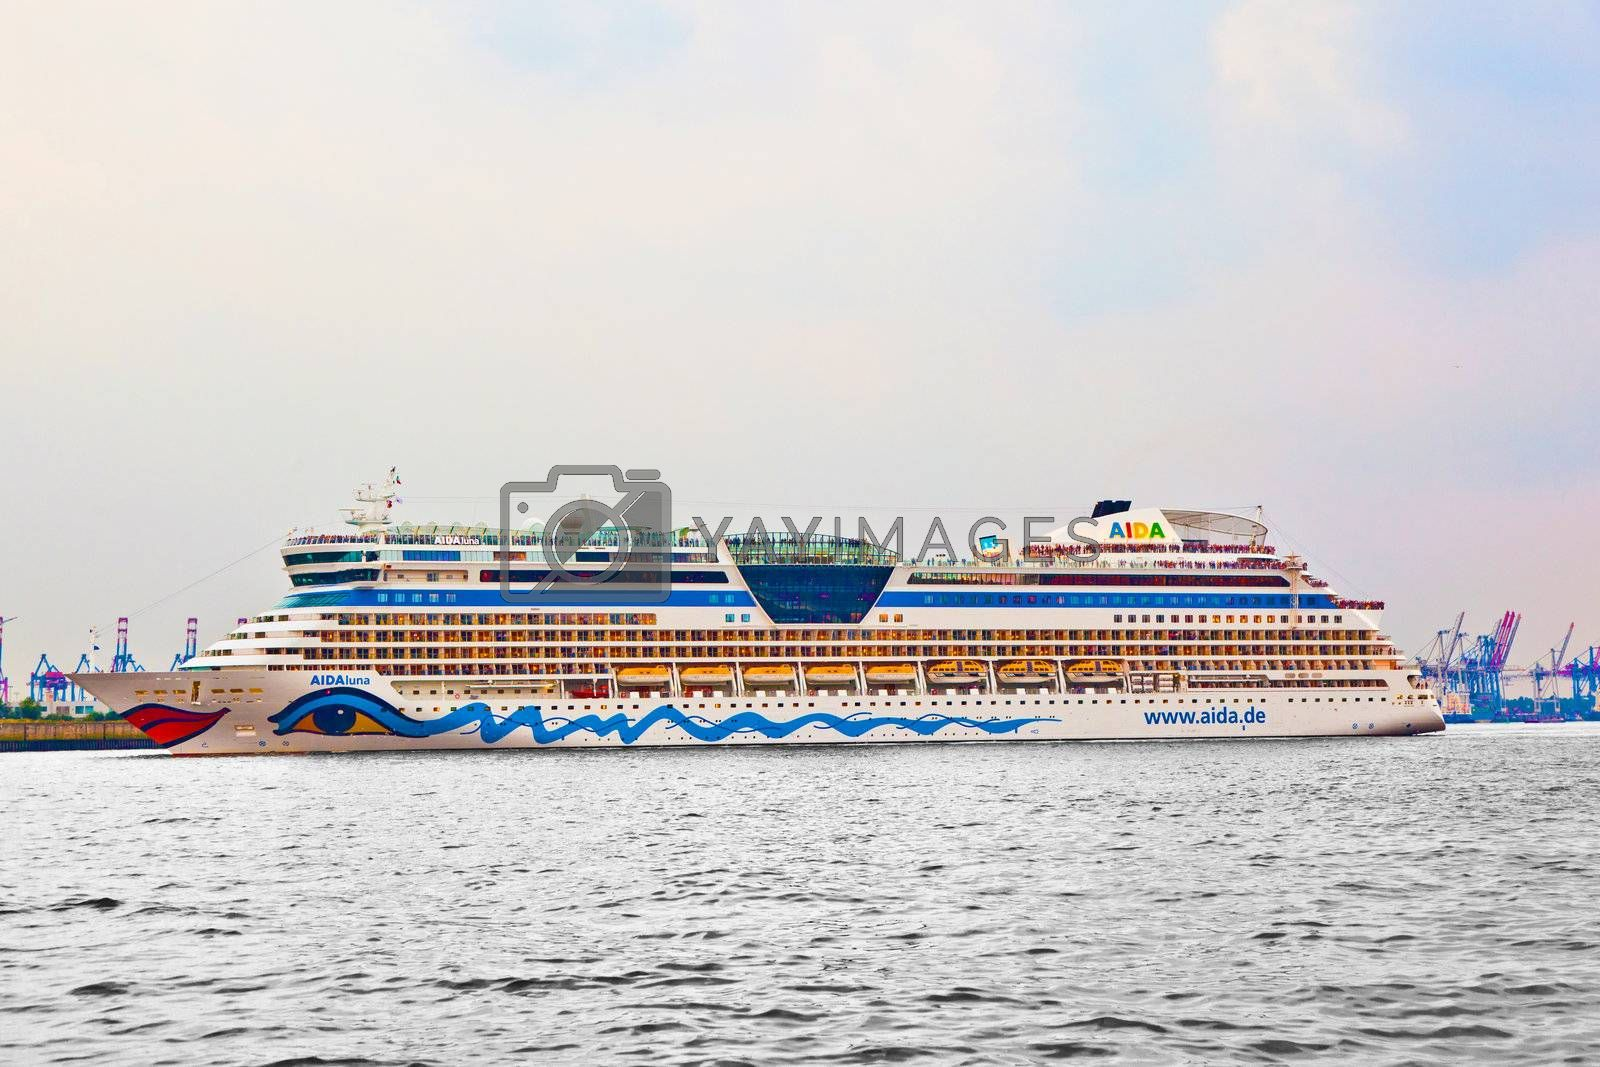 HAMBURG, GERMANY - 25 AUGUST: the famous cruise liner AIDA leaves the harbor at August 25, 2011 in Hamburg, Germany. AIDA Cruise Lines  carries more passengers than any other cruise line in the country.